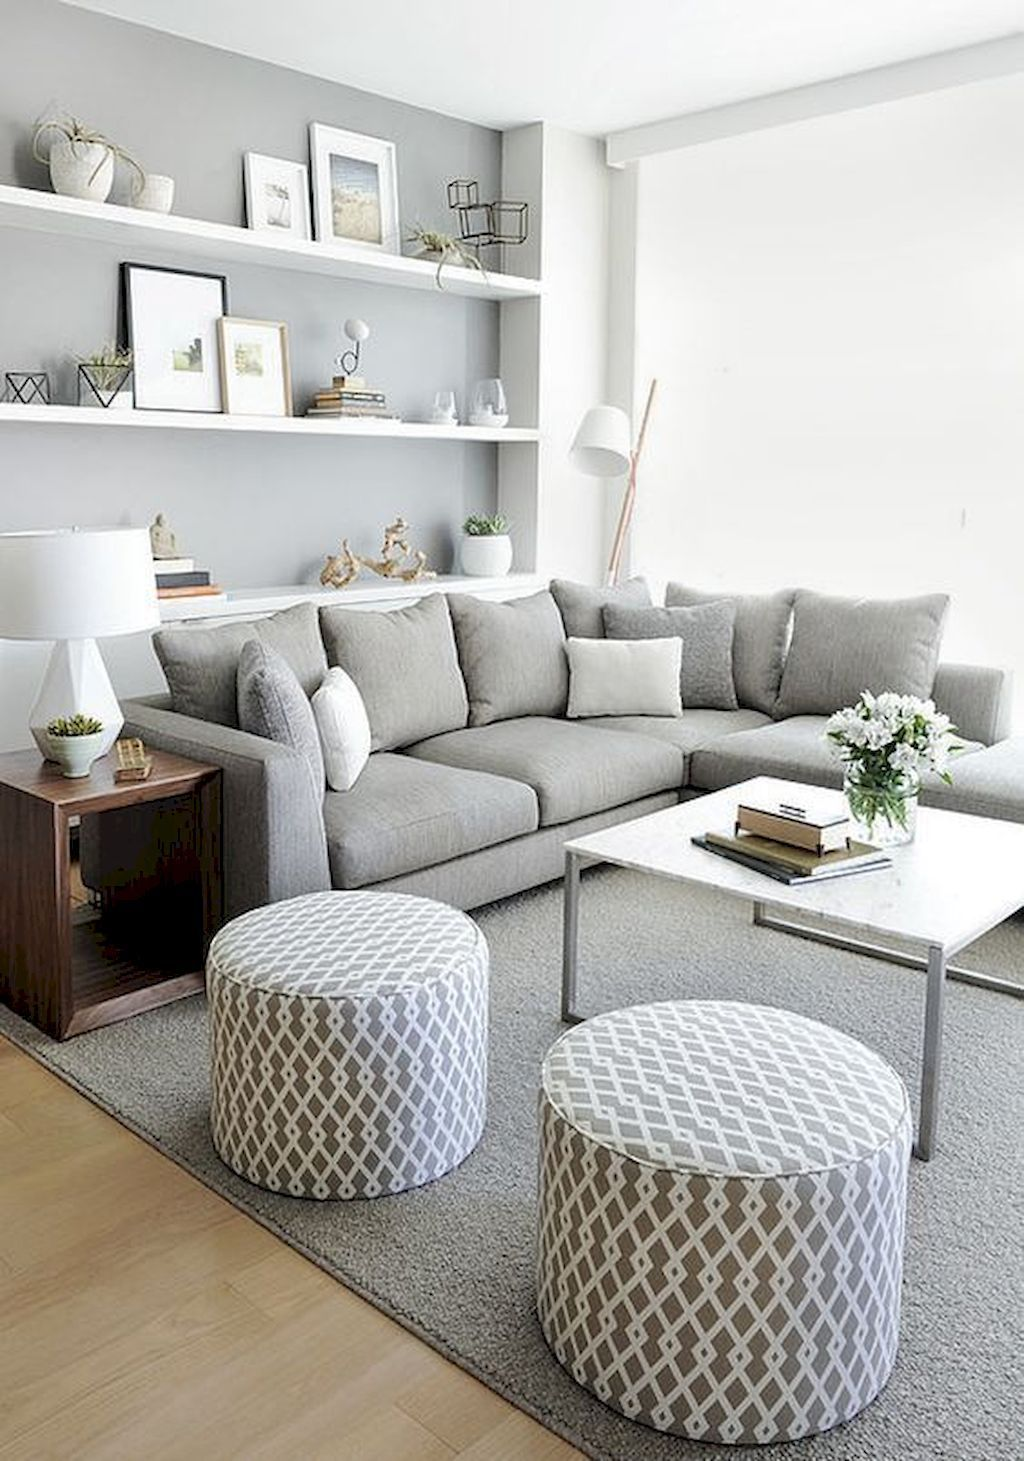 Cozy living room ideas for small apartments (25 | Neue wohnung ...